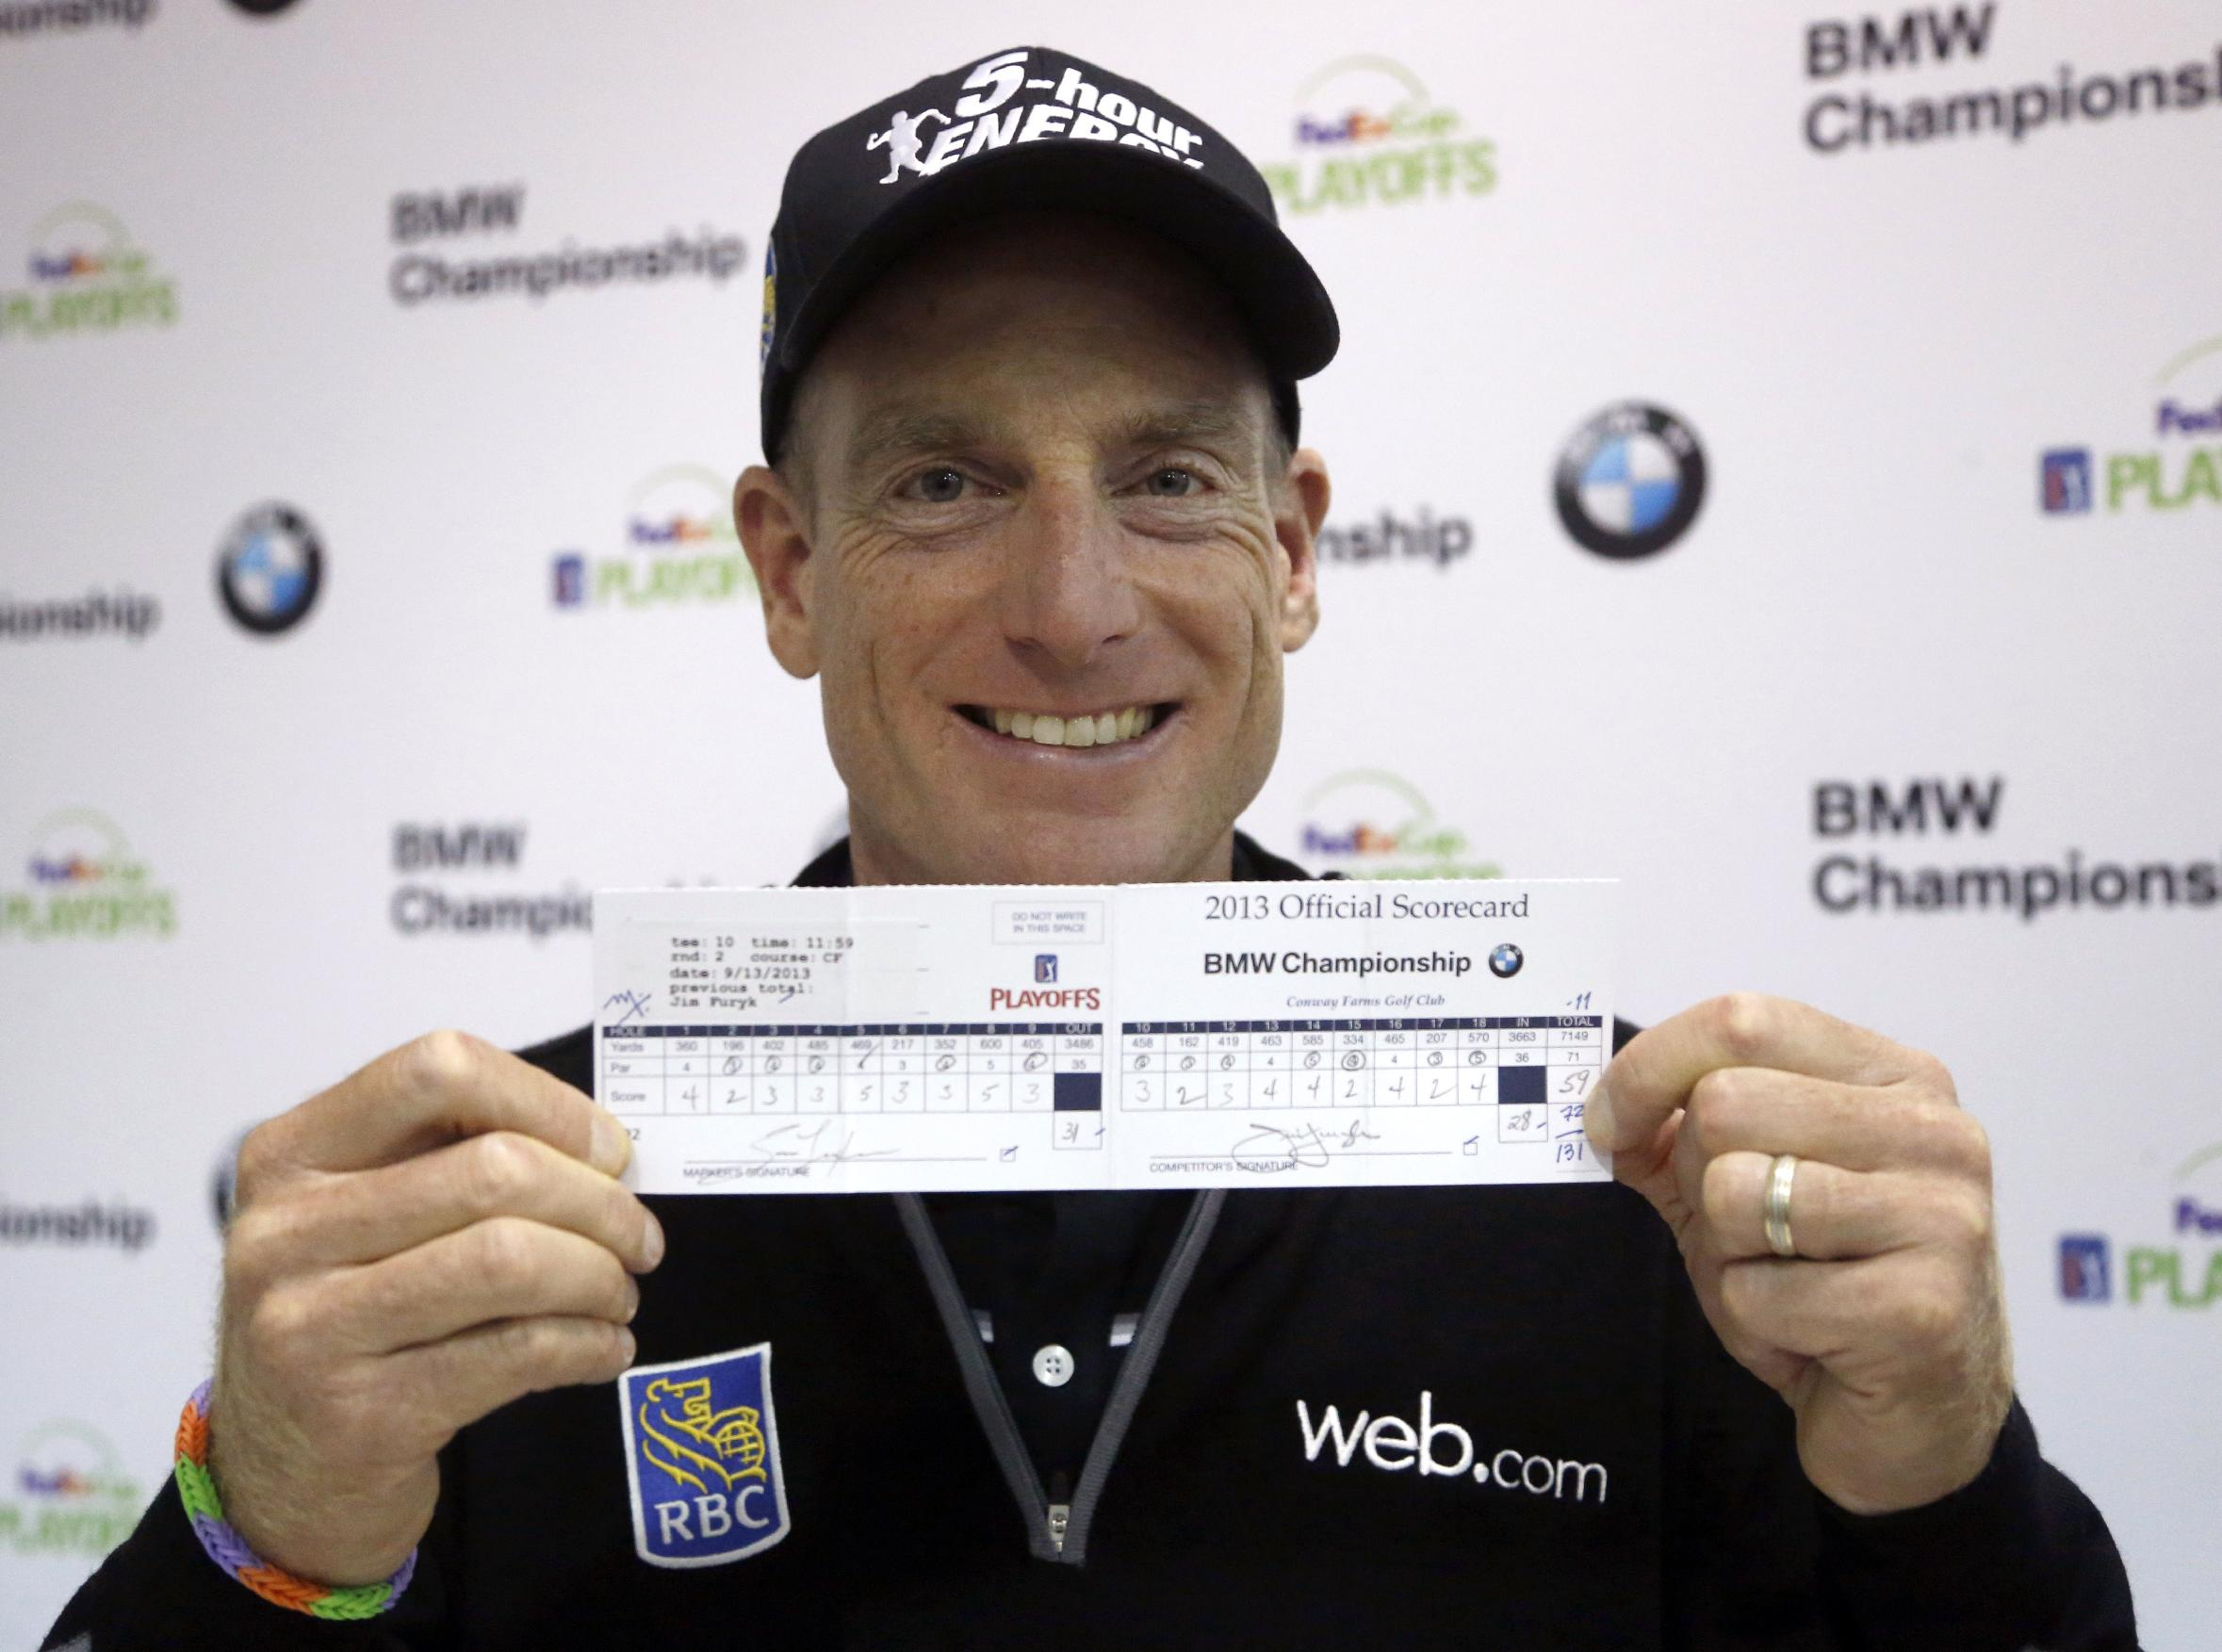 Furyk shoots a 59 at BMW Championship